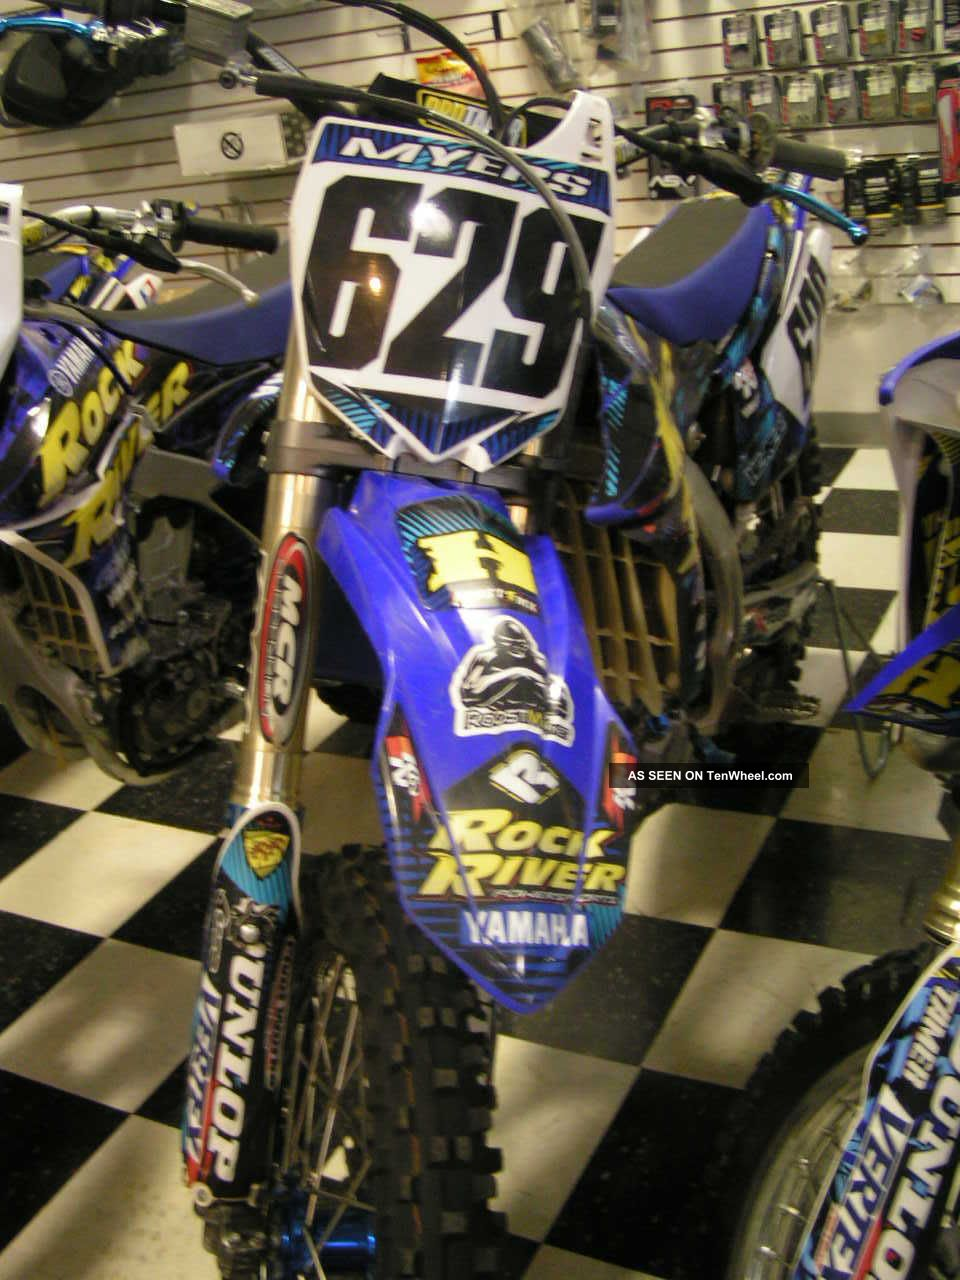 Yamaha Yz450f / 2010 / Gytr Pipe / Kyb Suspension / Rrps Graphics / More YZ photo